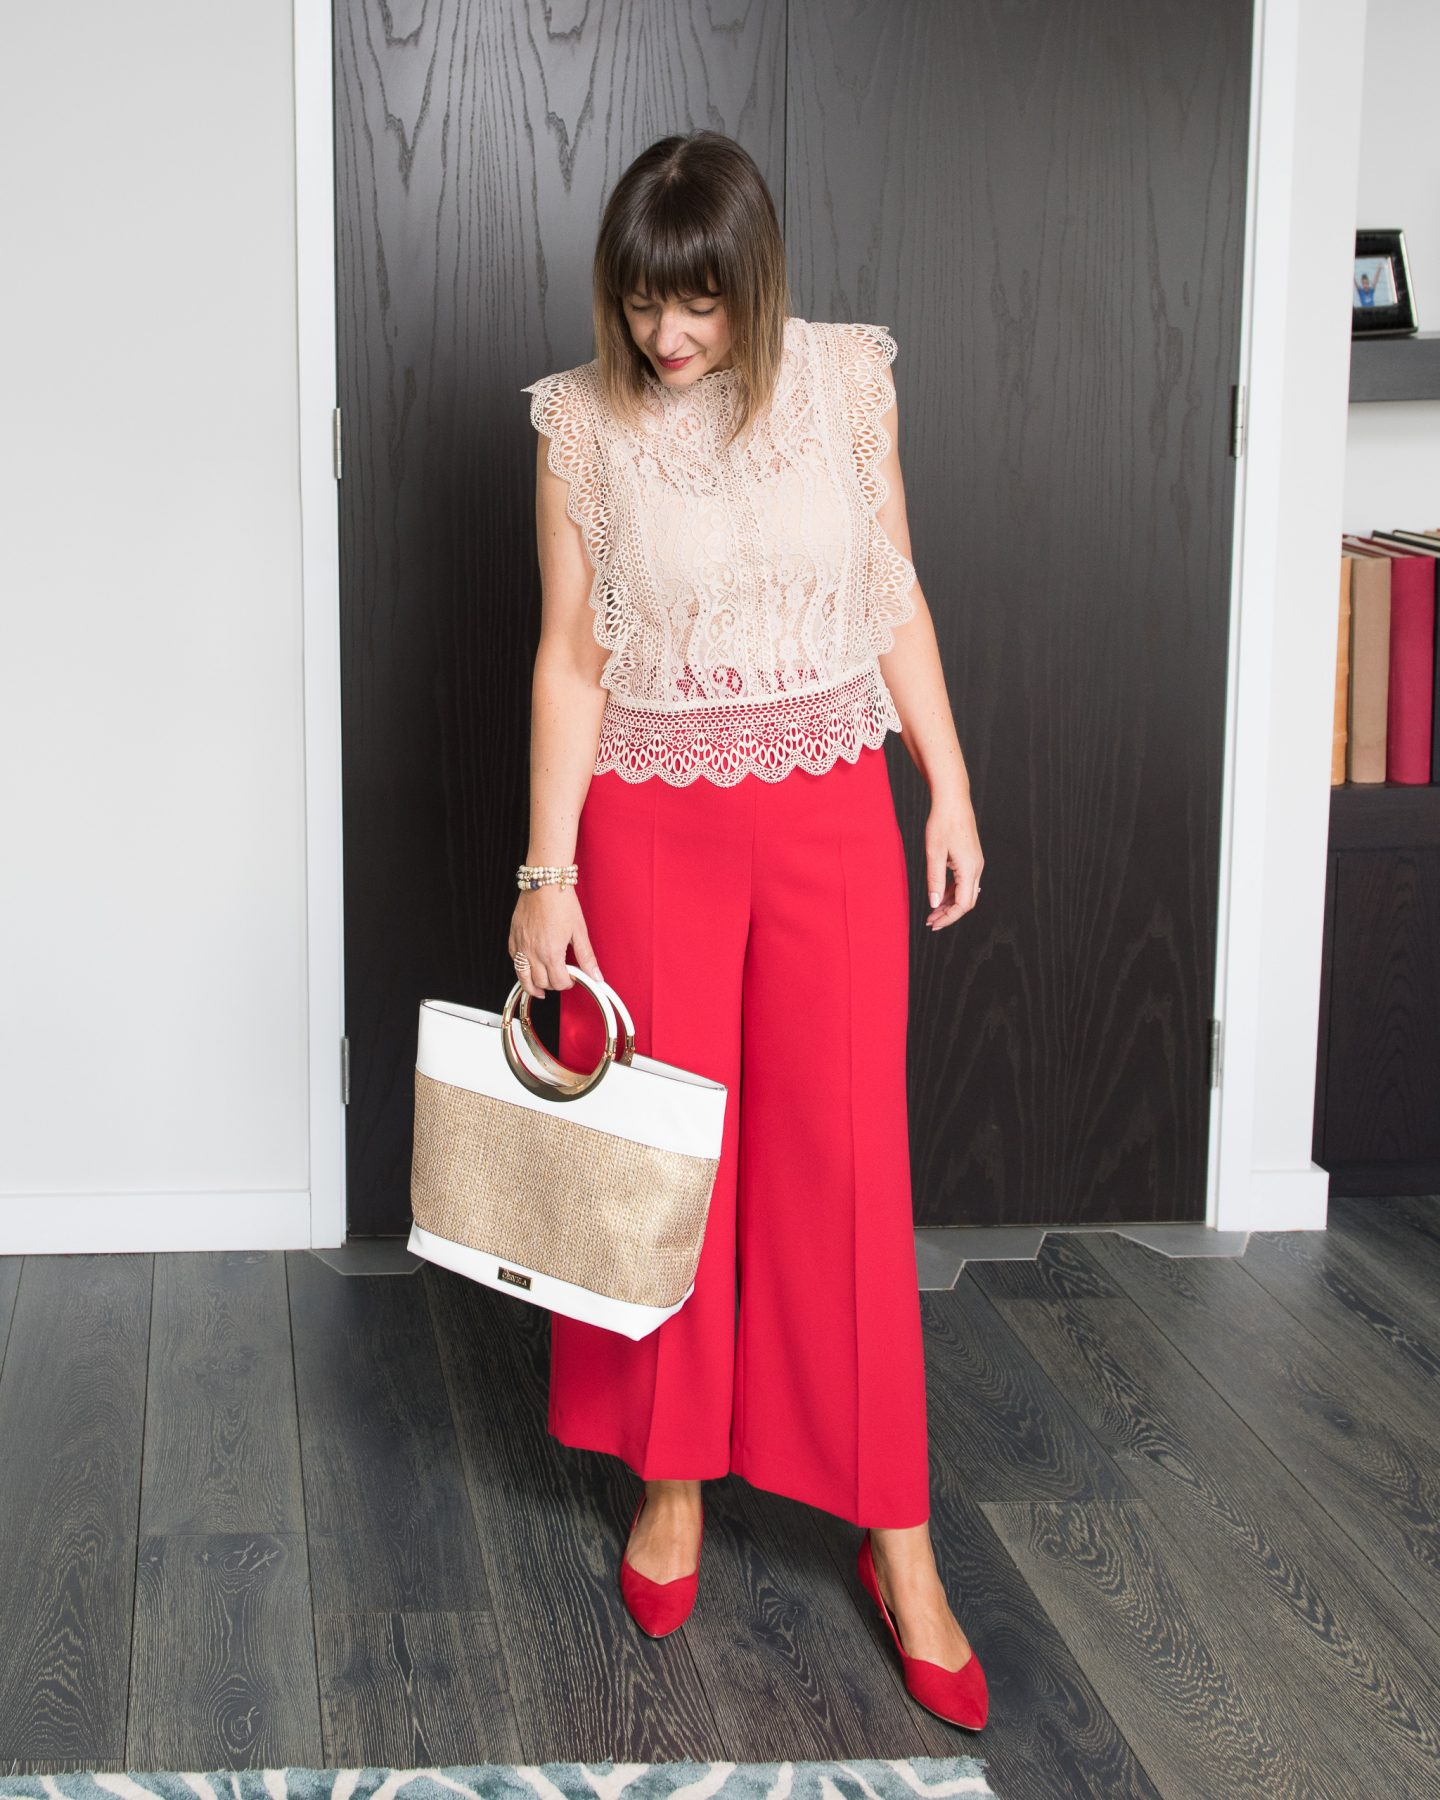 Lizzi Richardson Zara Red Trousers Day Look